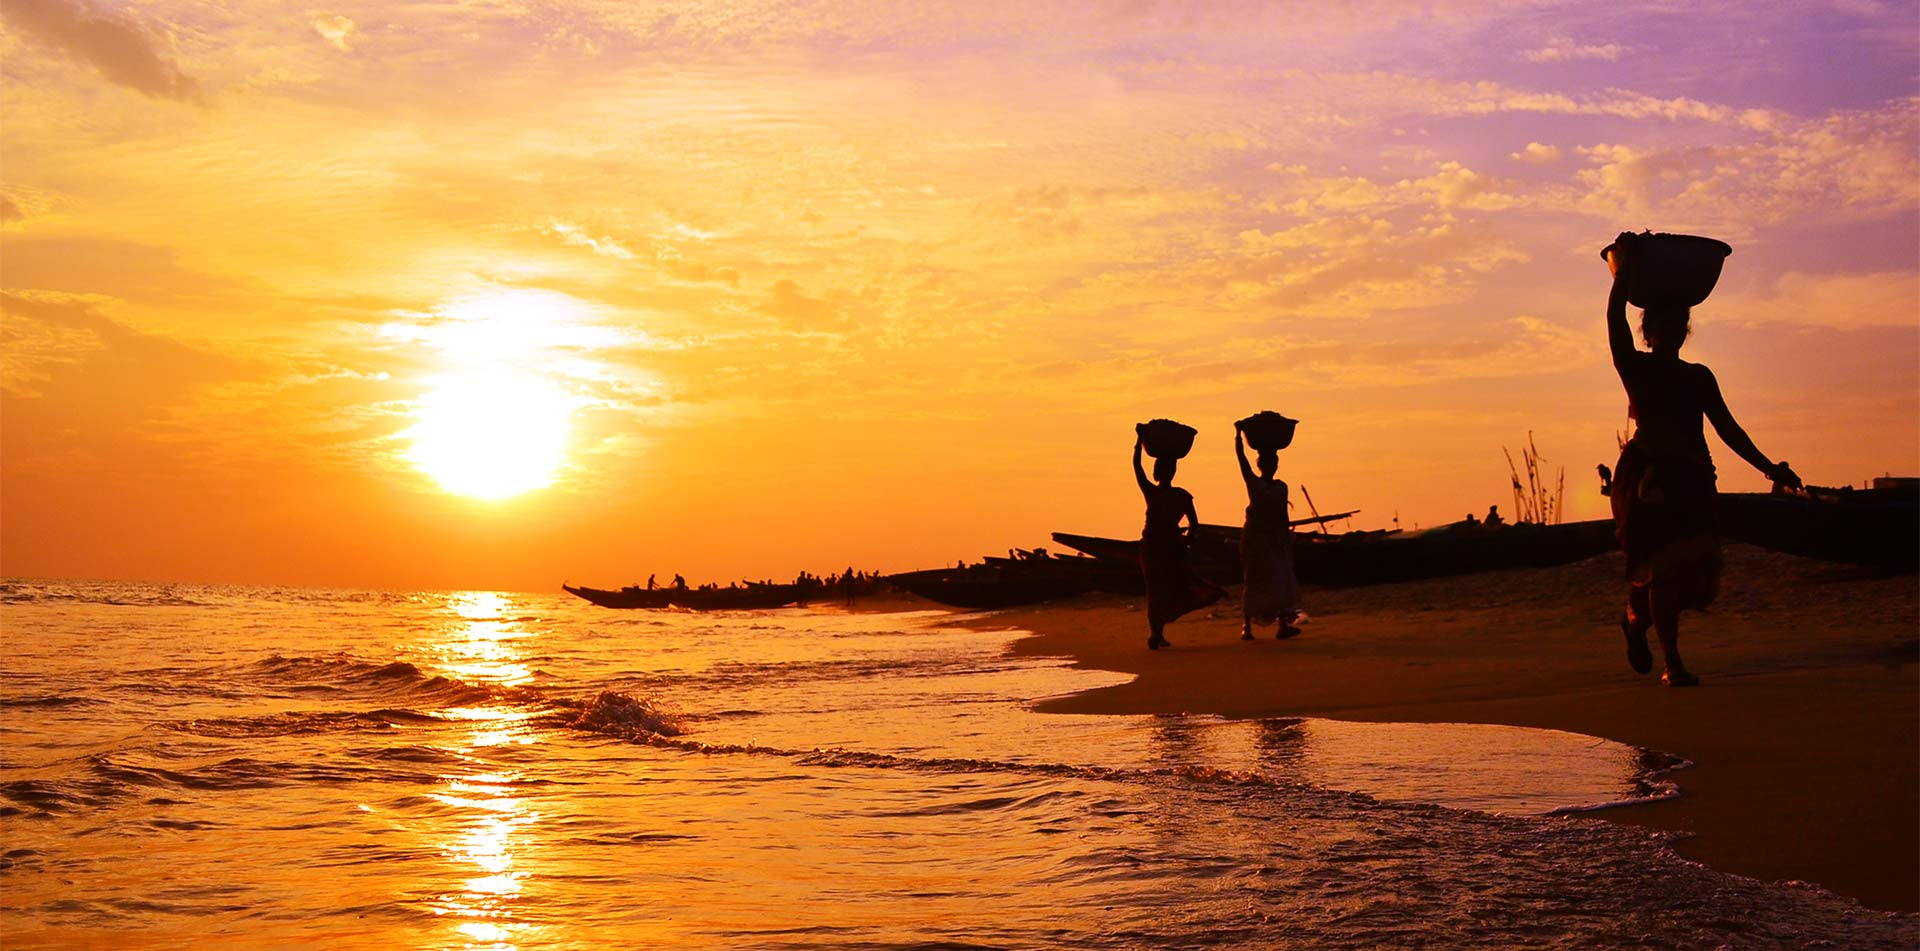 Asia India women carrying baskets along the shoreline at sunset - luxury vacation destinations